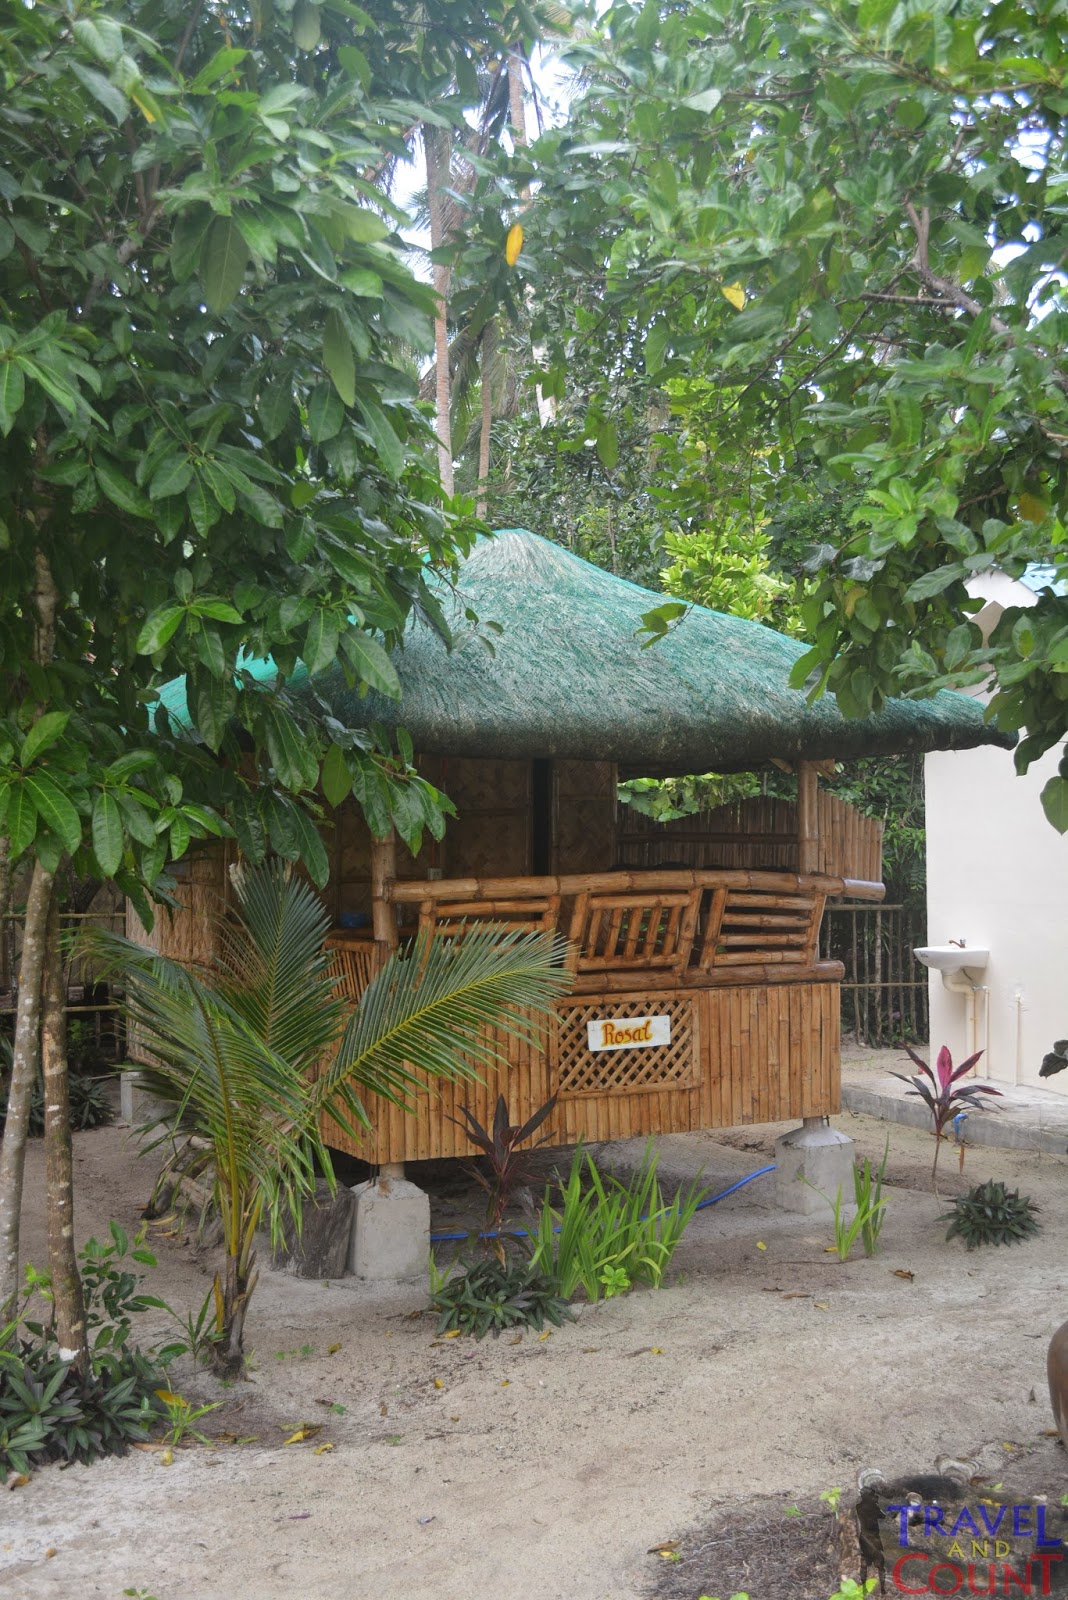 Cottages in Joven's REsort, Cagbalete